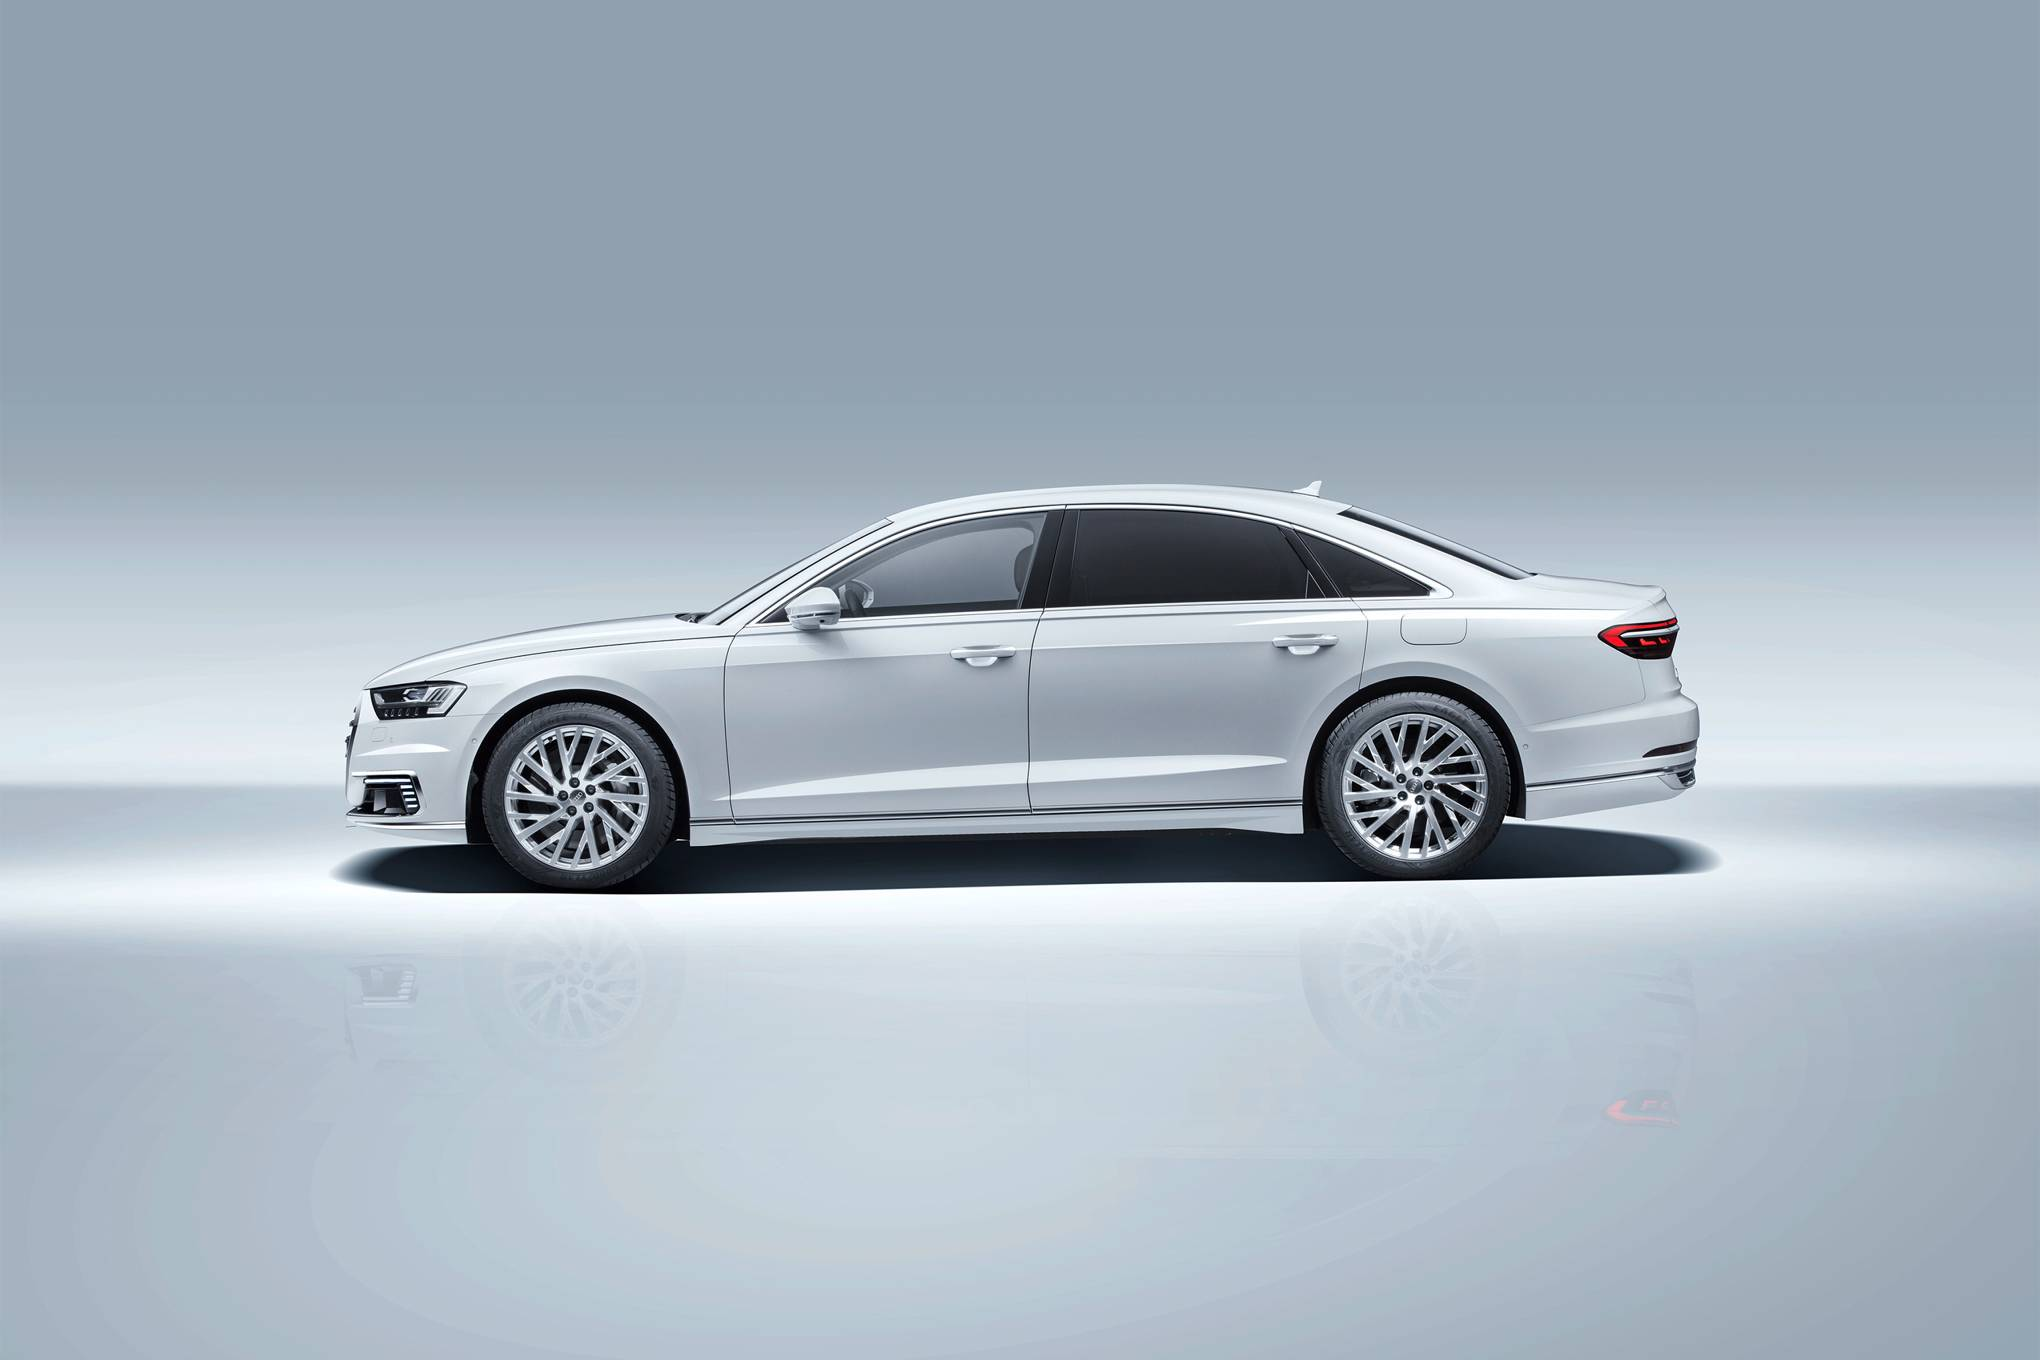 Is The Audi A8 Tfsi E The Best Luxury Hybrid Yet Wired Uk